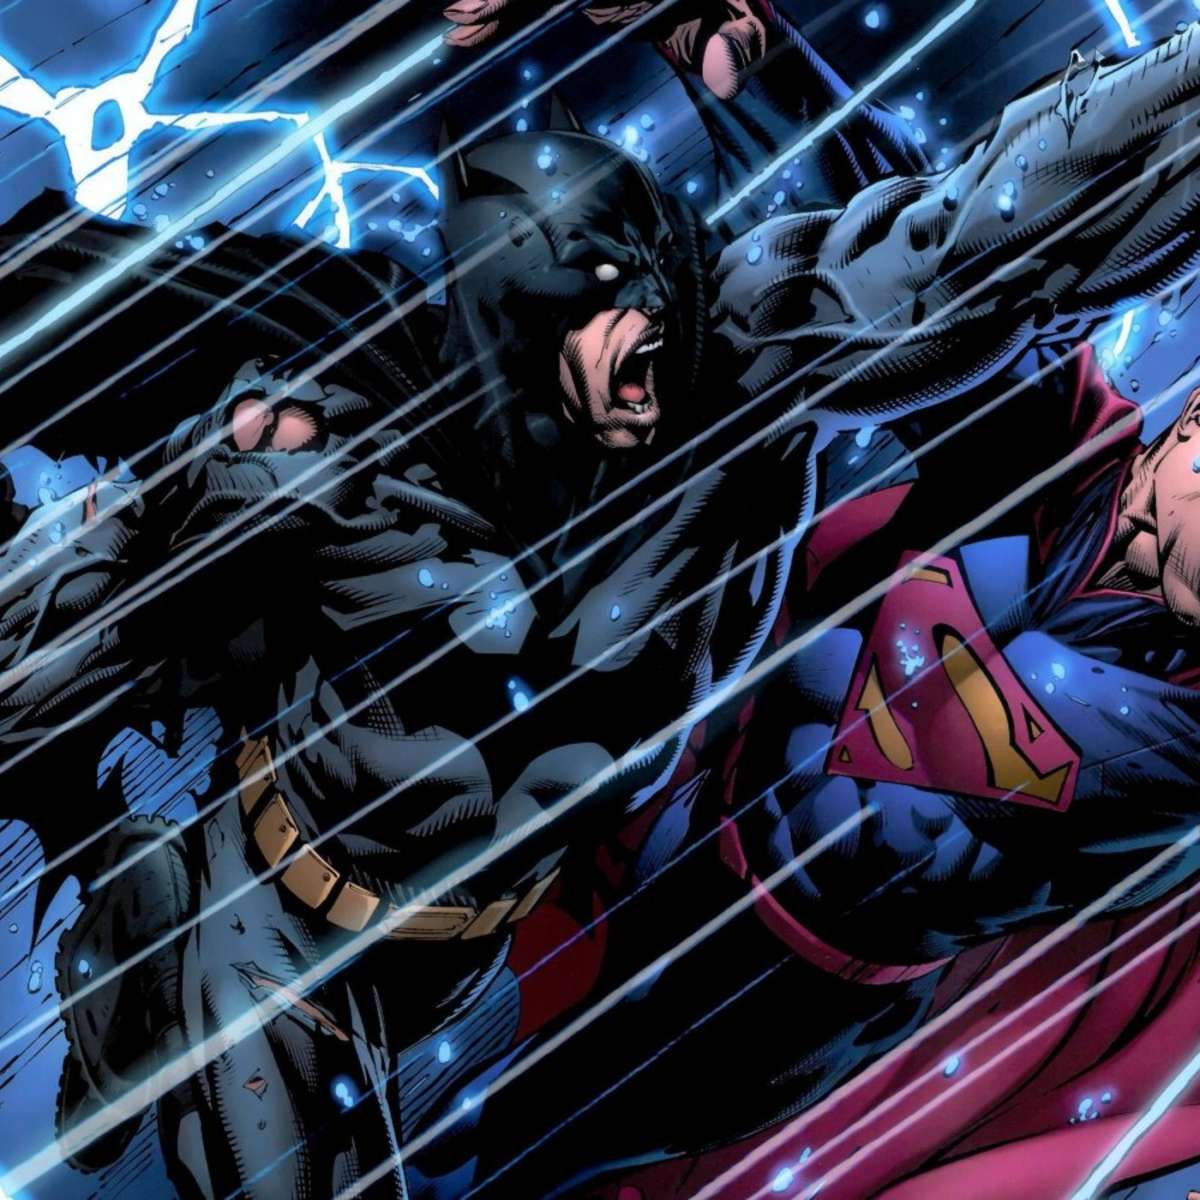 batman_rain_dc_comics_superman_superheroes_battles_lightning_1440x900_71988.jpg